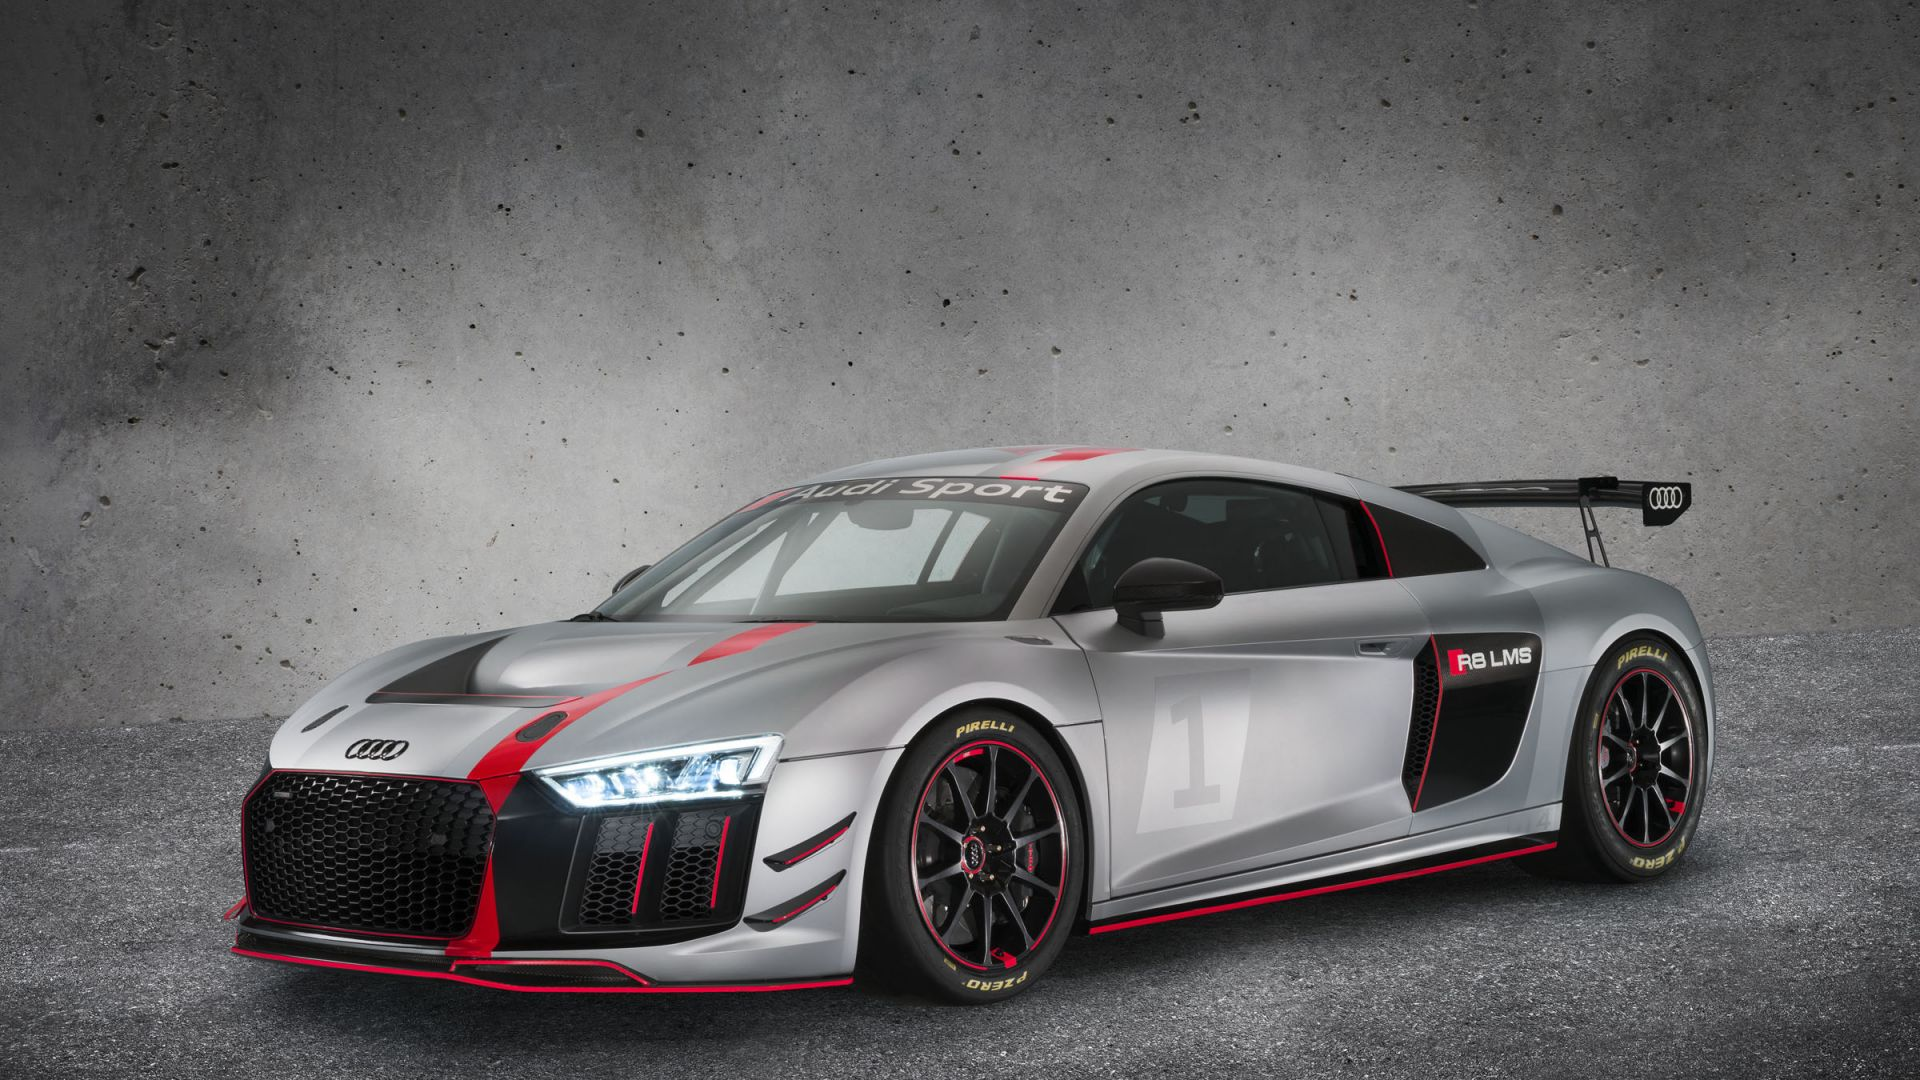 wallpaper audi r8 lms gt4 sport car gray 2017 new york auto show cars bikes 13351. Black Bedroom Furniture Sets. Home Design Ideas